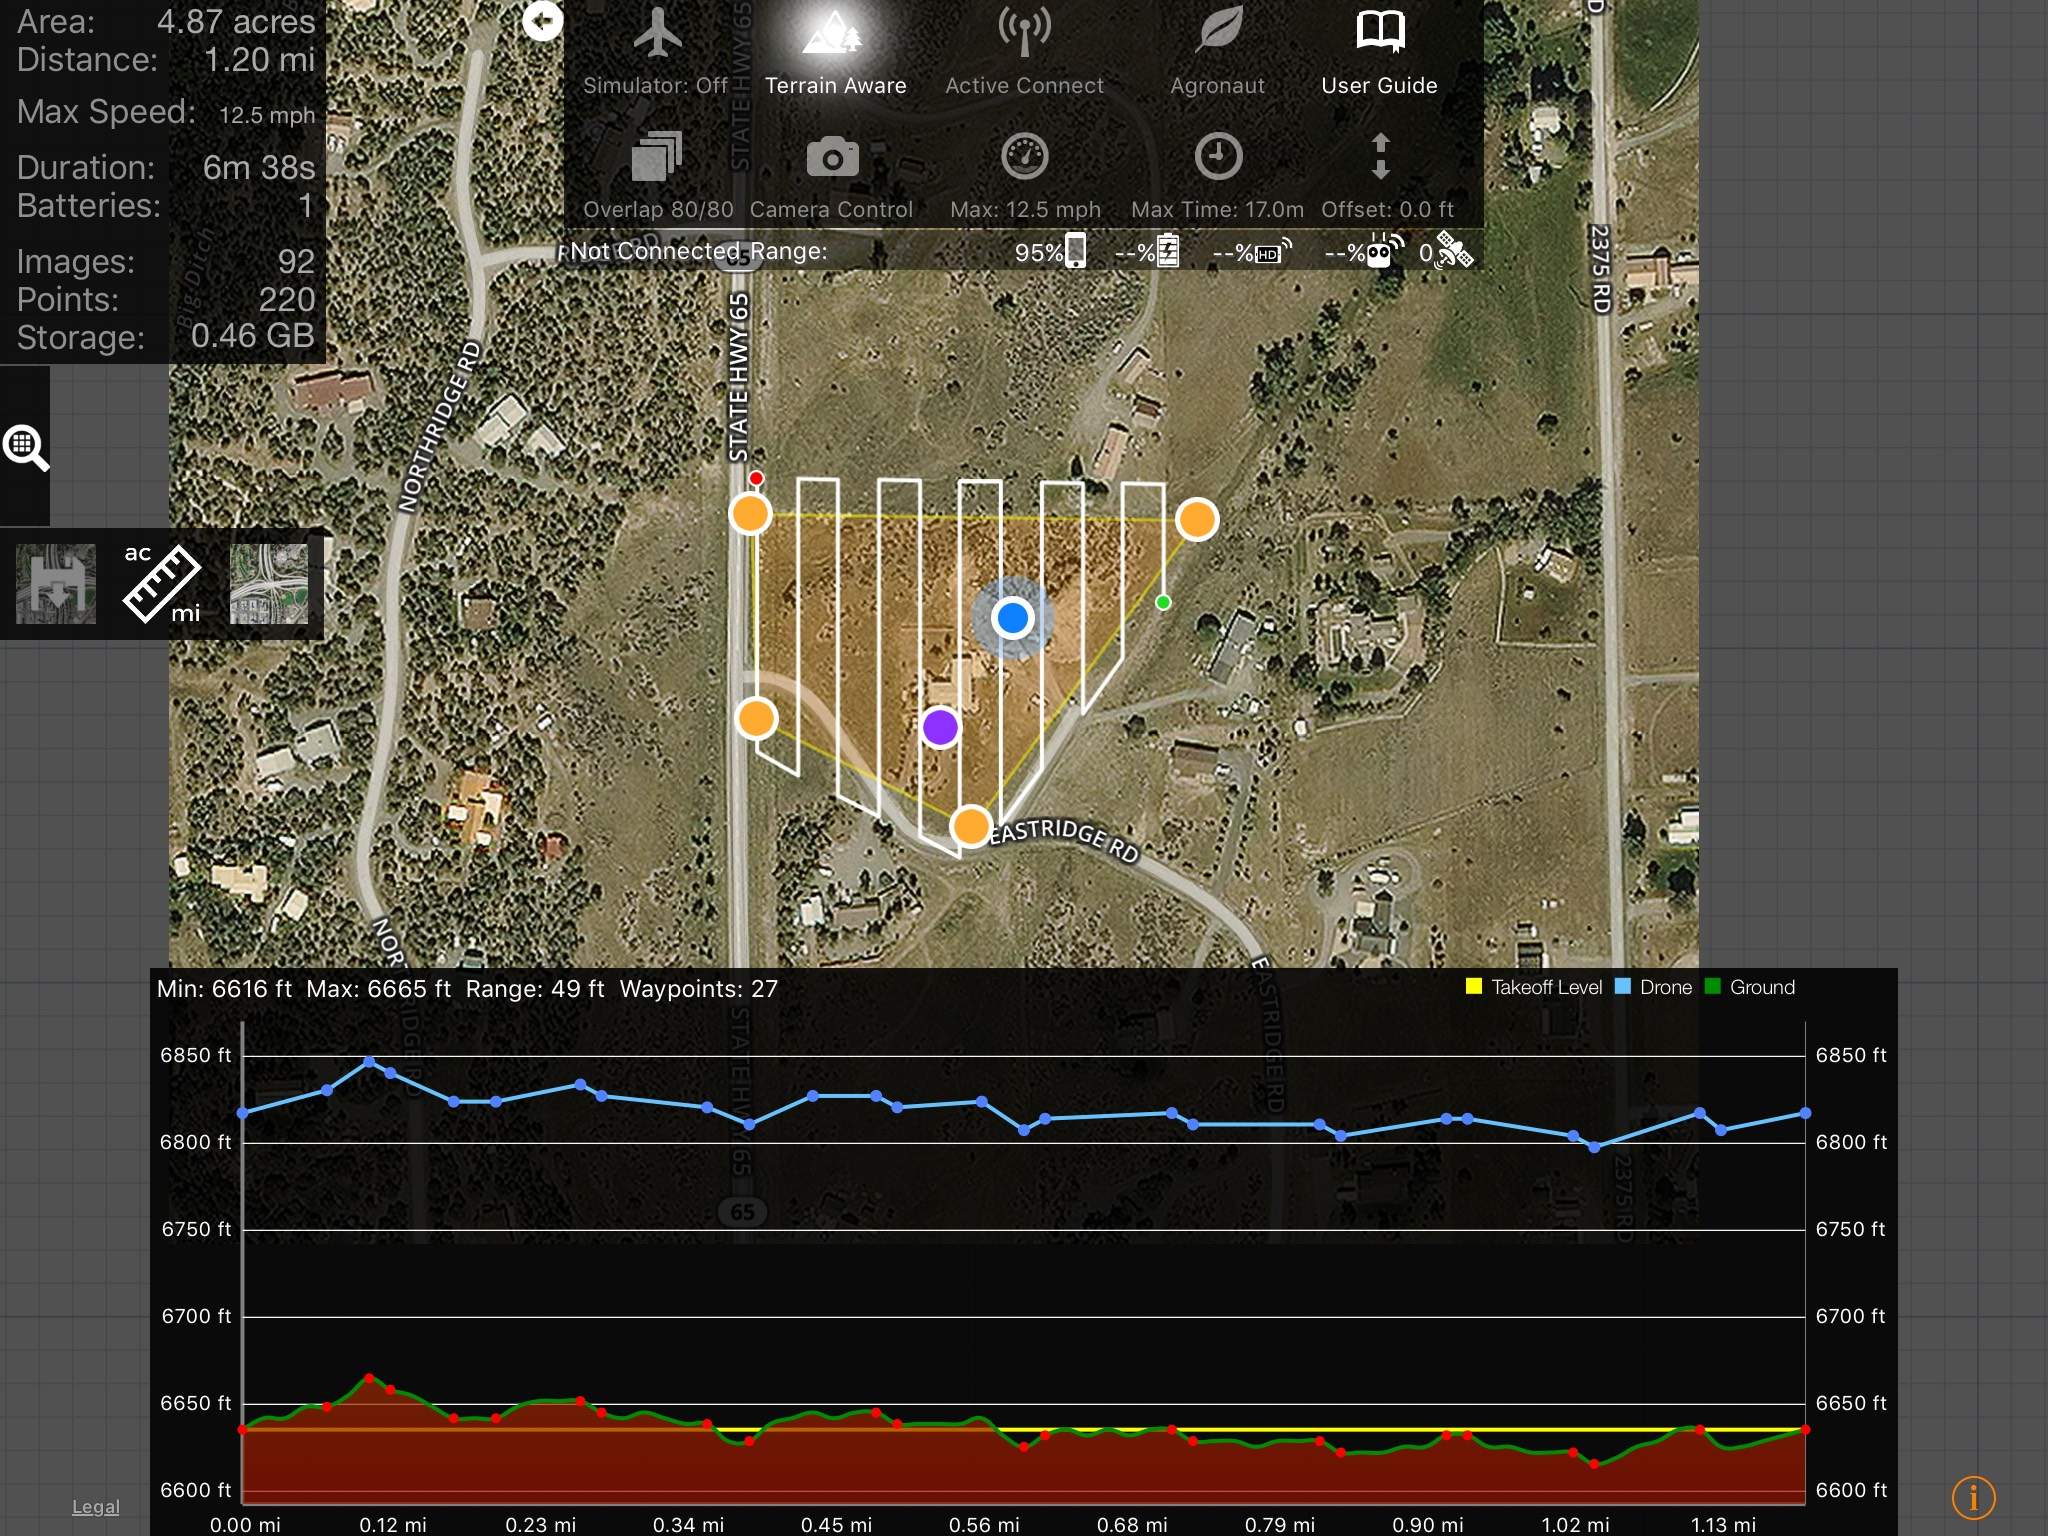 Imagery and Data Collection Applications - DroneMapper